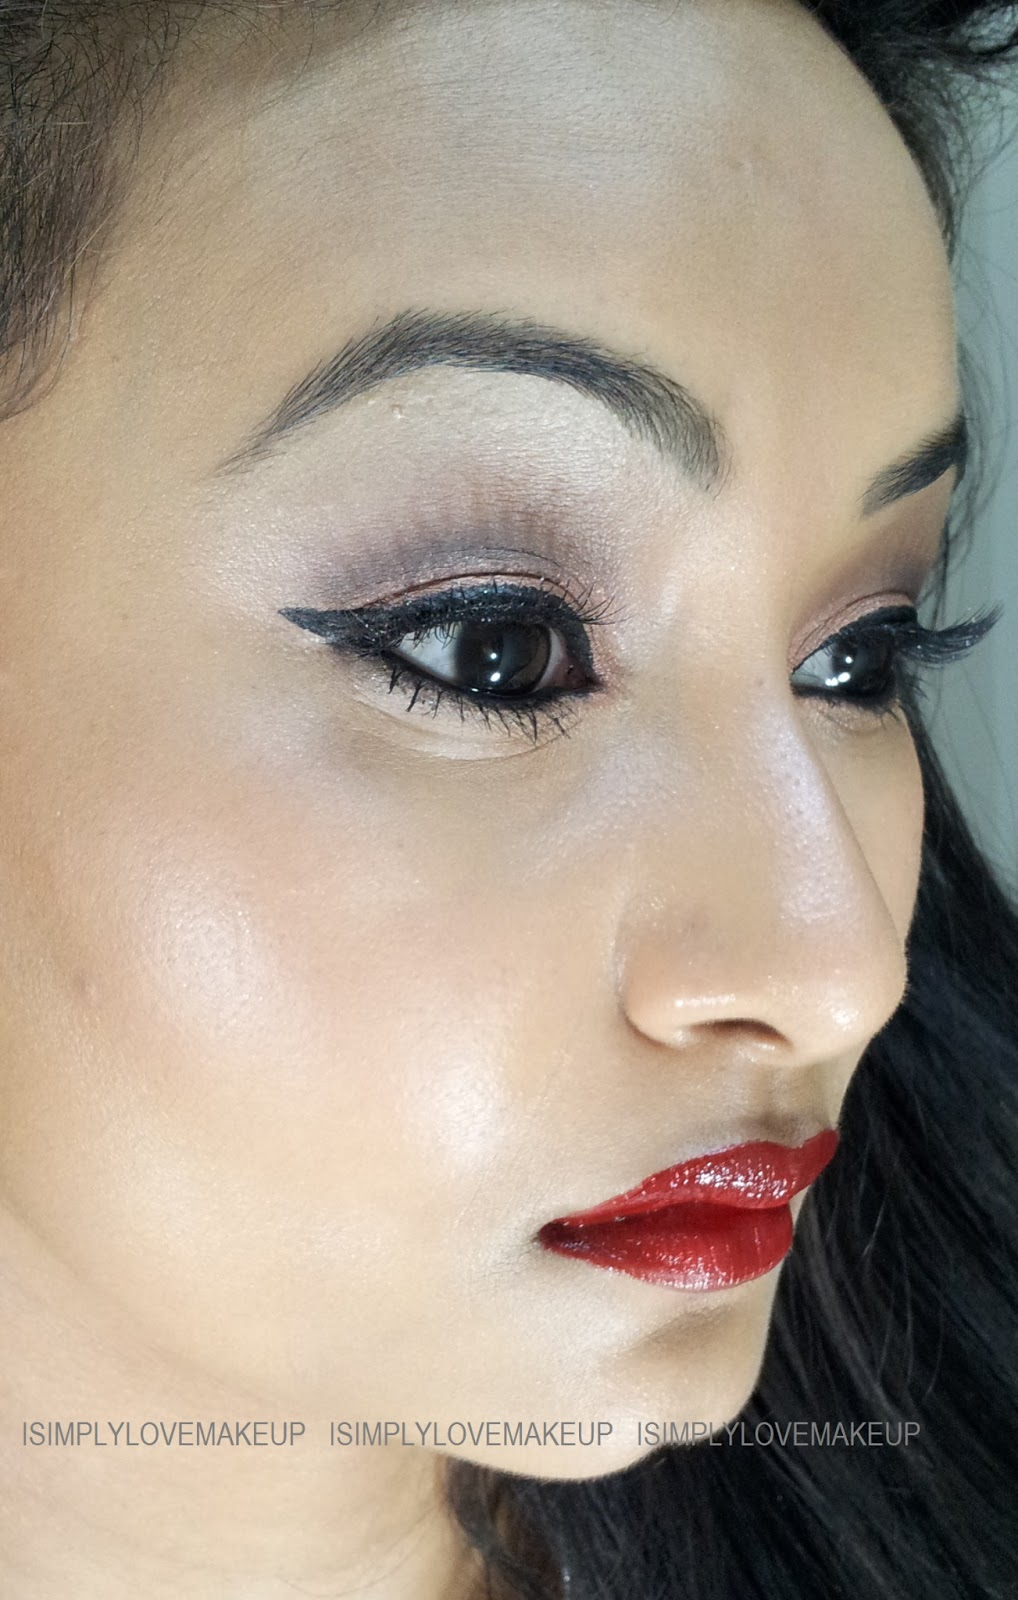 Asian Eyes Kpop And Makeup: LOTD: Asian Eyes And Blood Red Lips